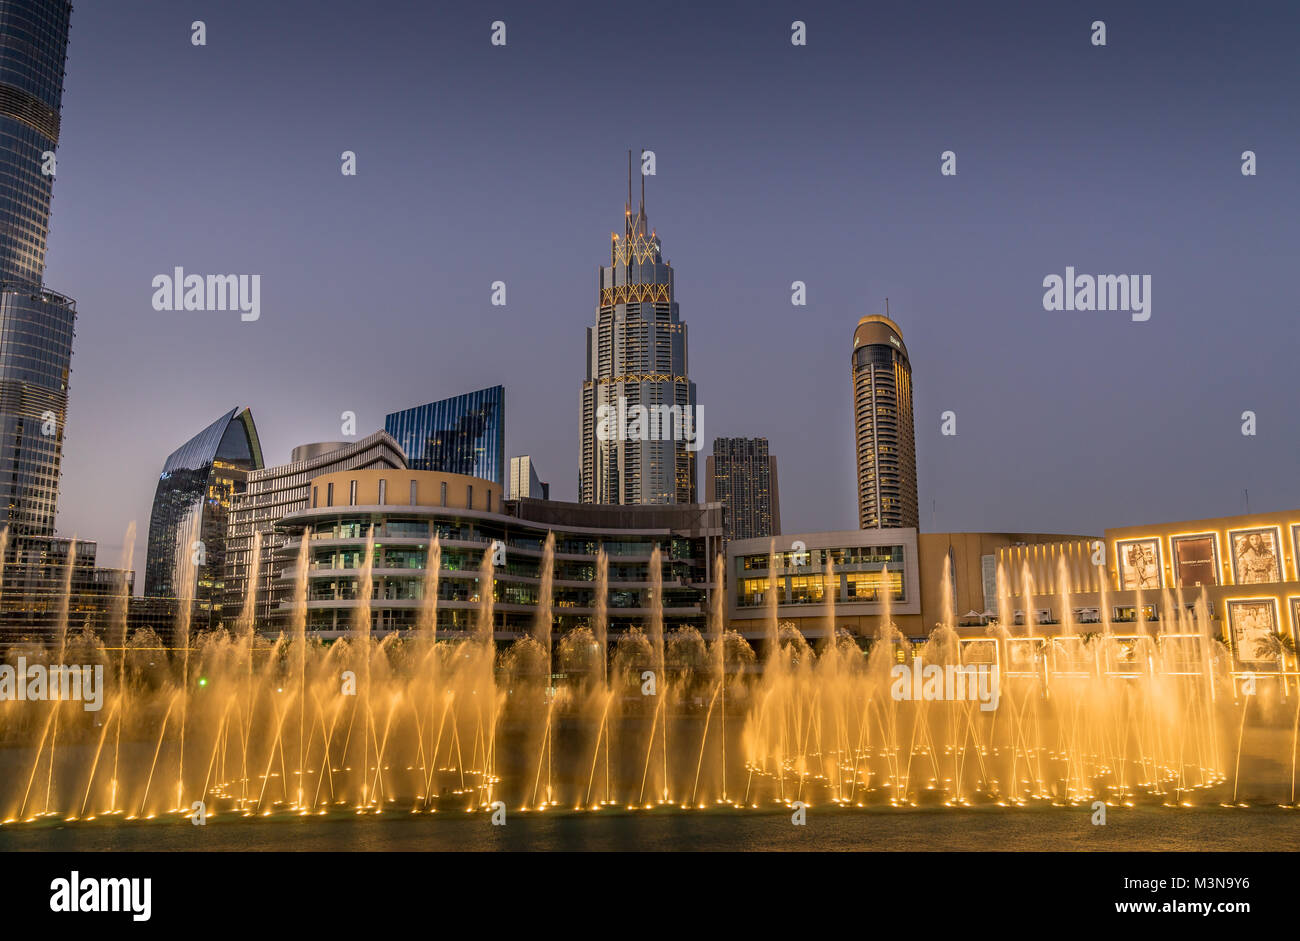 Dubai, UAE - Jan 9, 2018. Evening view of Dubai Fountain's dancing waters performance accompanied by colorful syncing Stock Photo